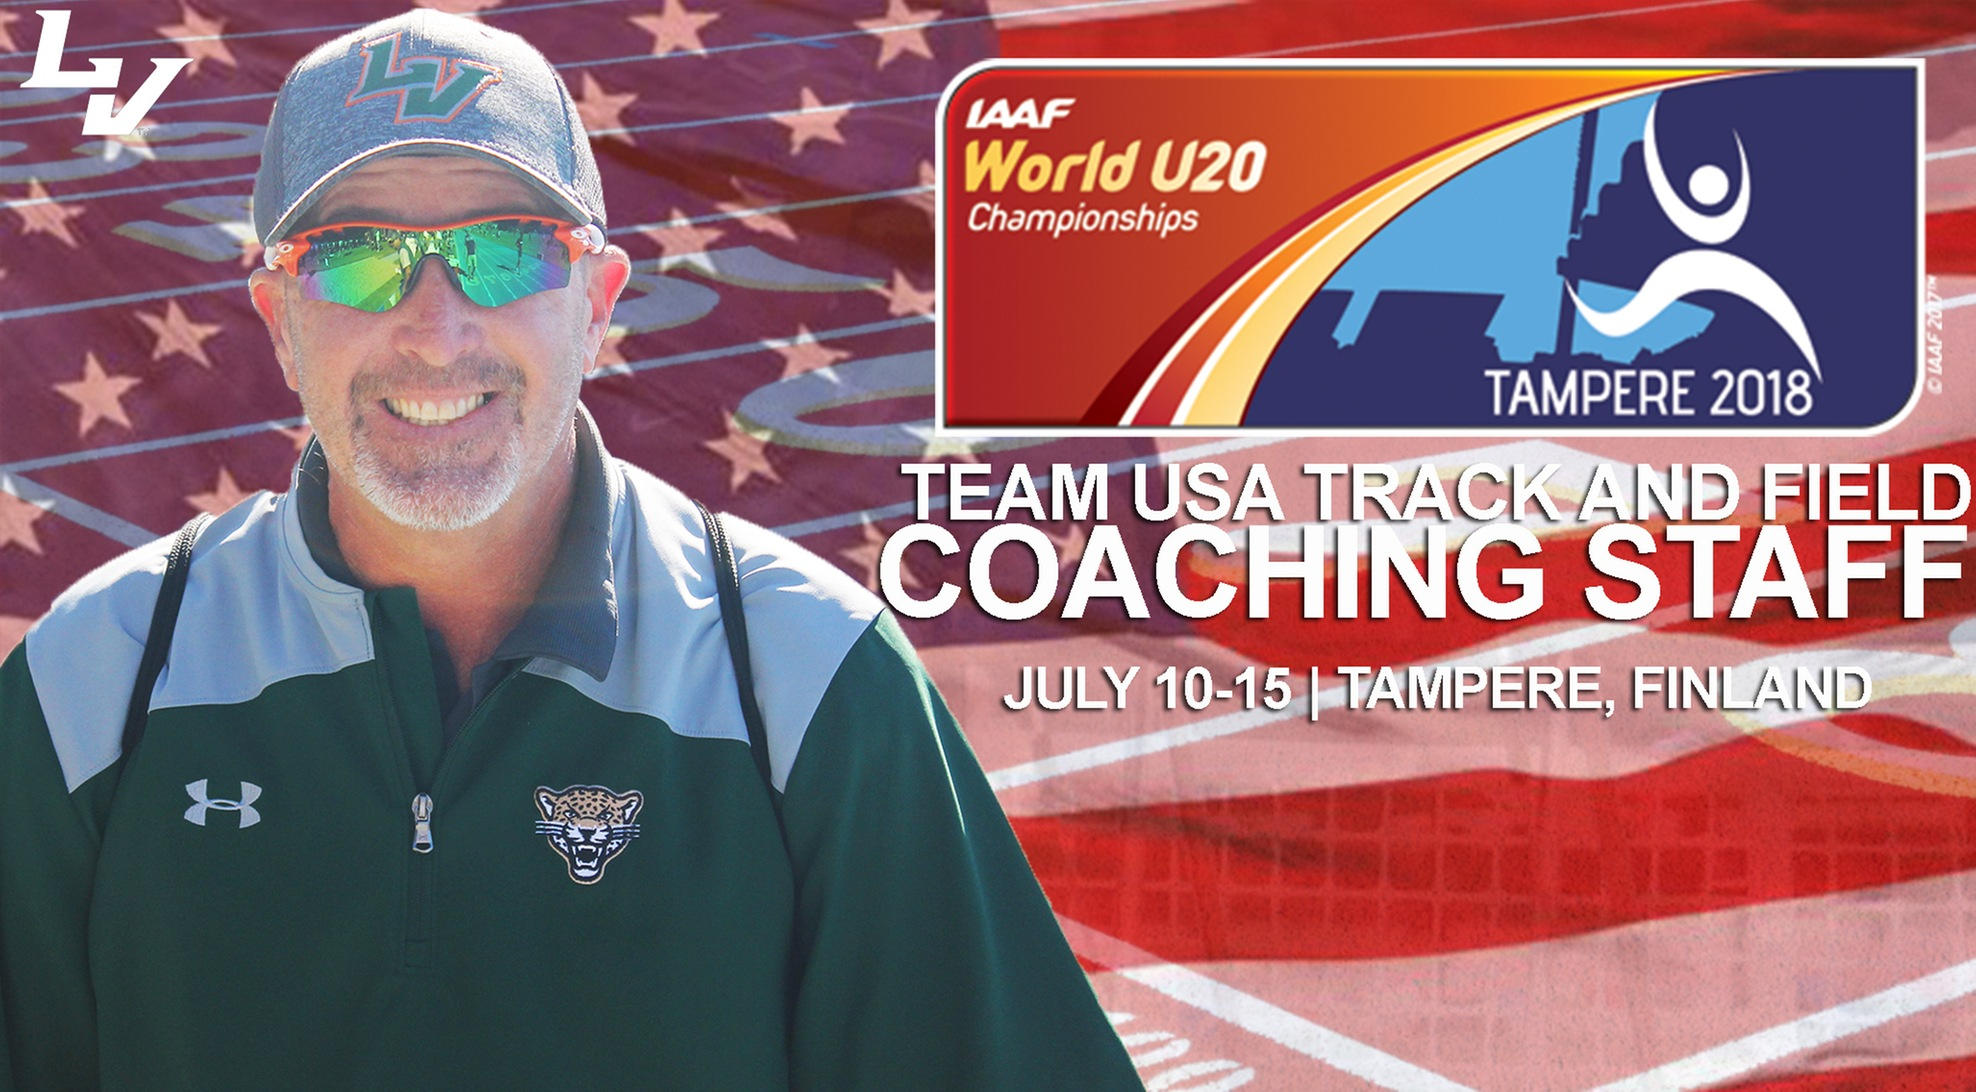 Reid Named to USATF coaching staff for IAAF U20 Championships